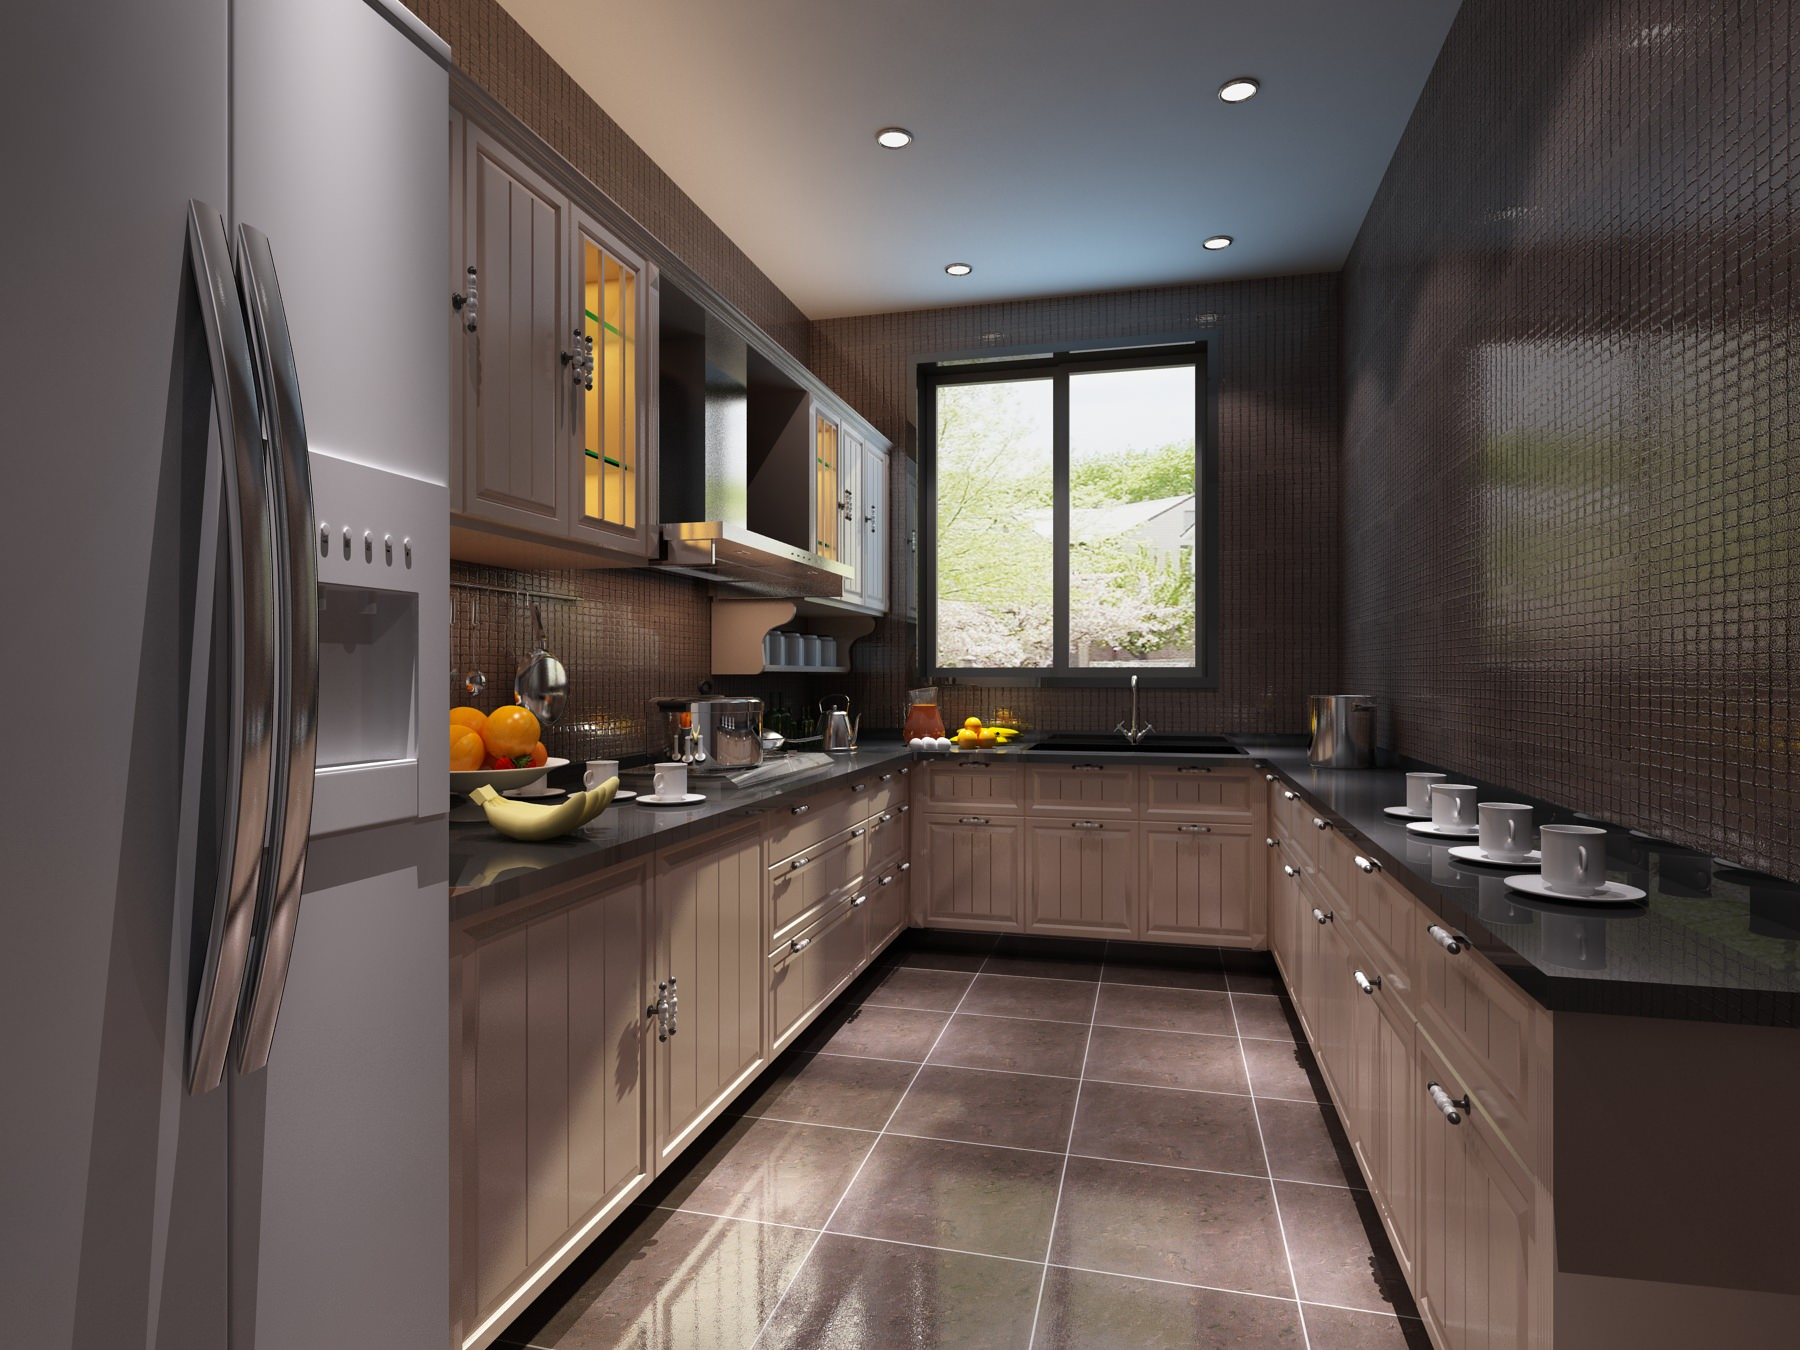 Modern Kitchen 3d Model Modern Kitchen Interior With Refrigerator 3d Model  Max